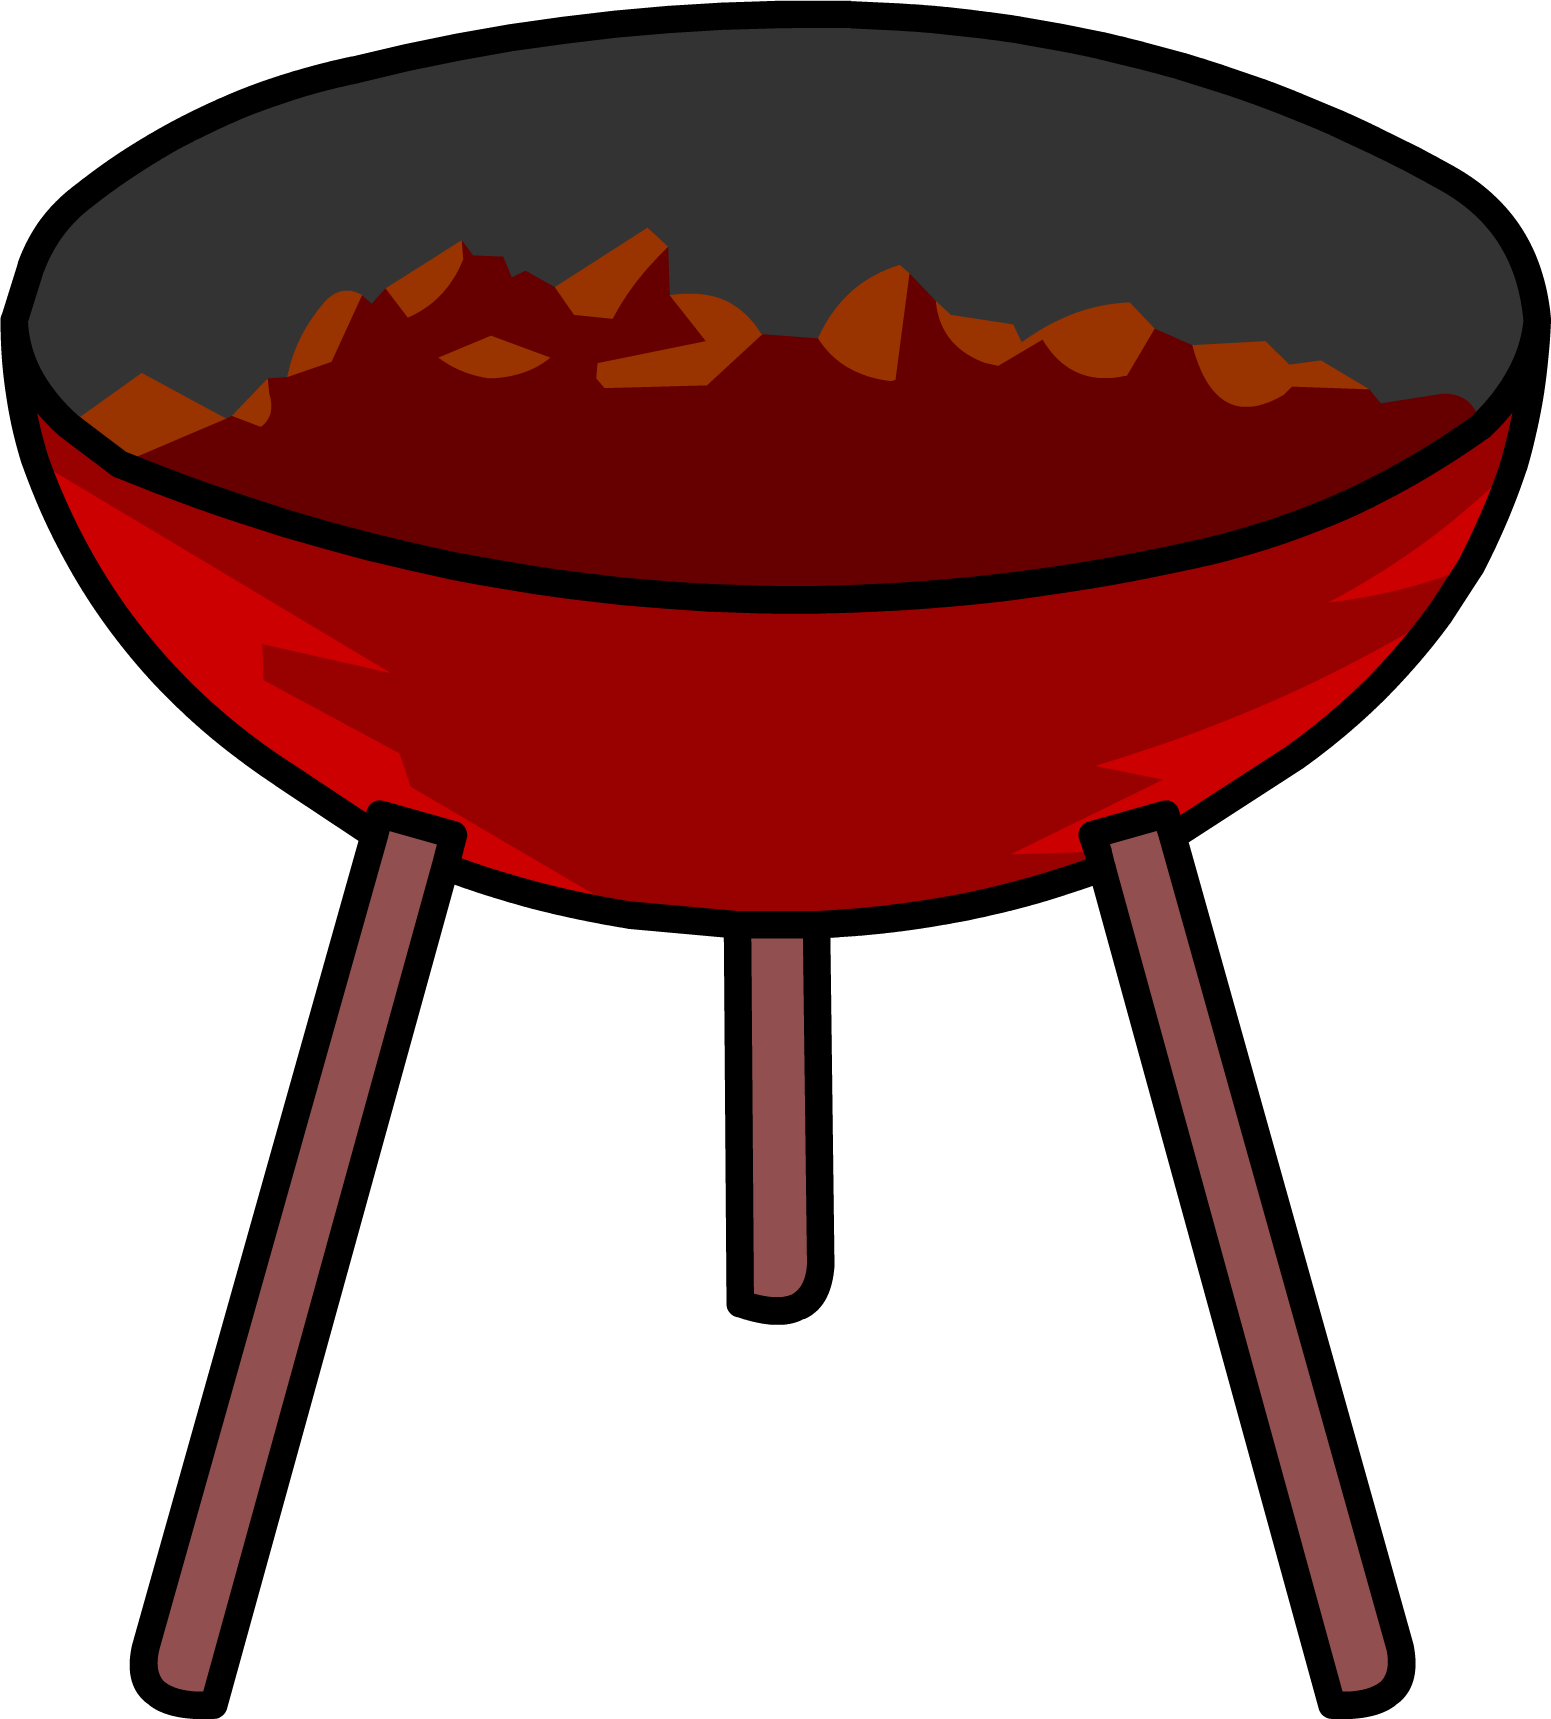 banner transparent stock Barbecue png images free. Grilled clipart braai